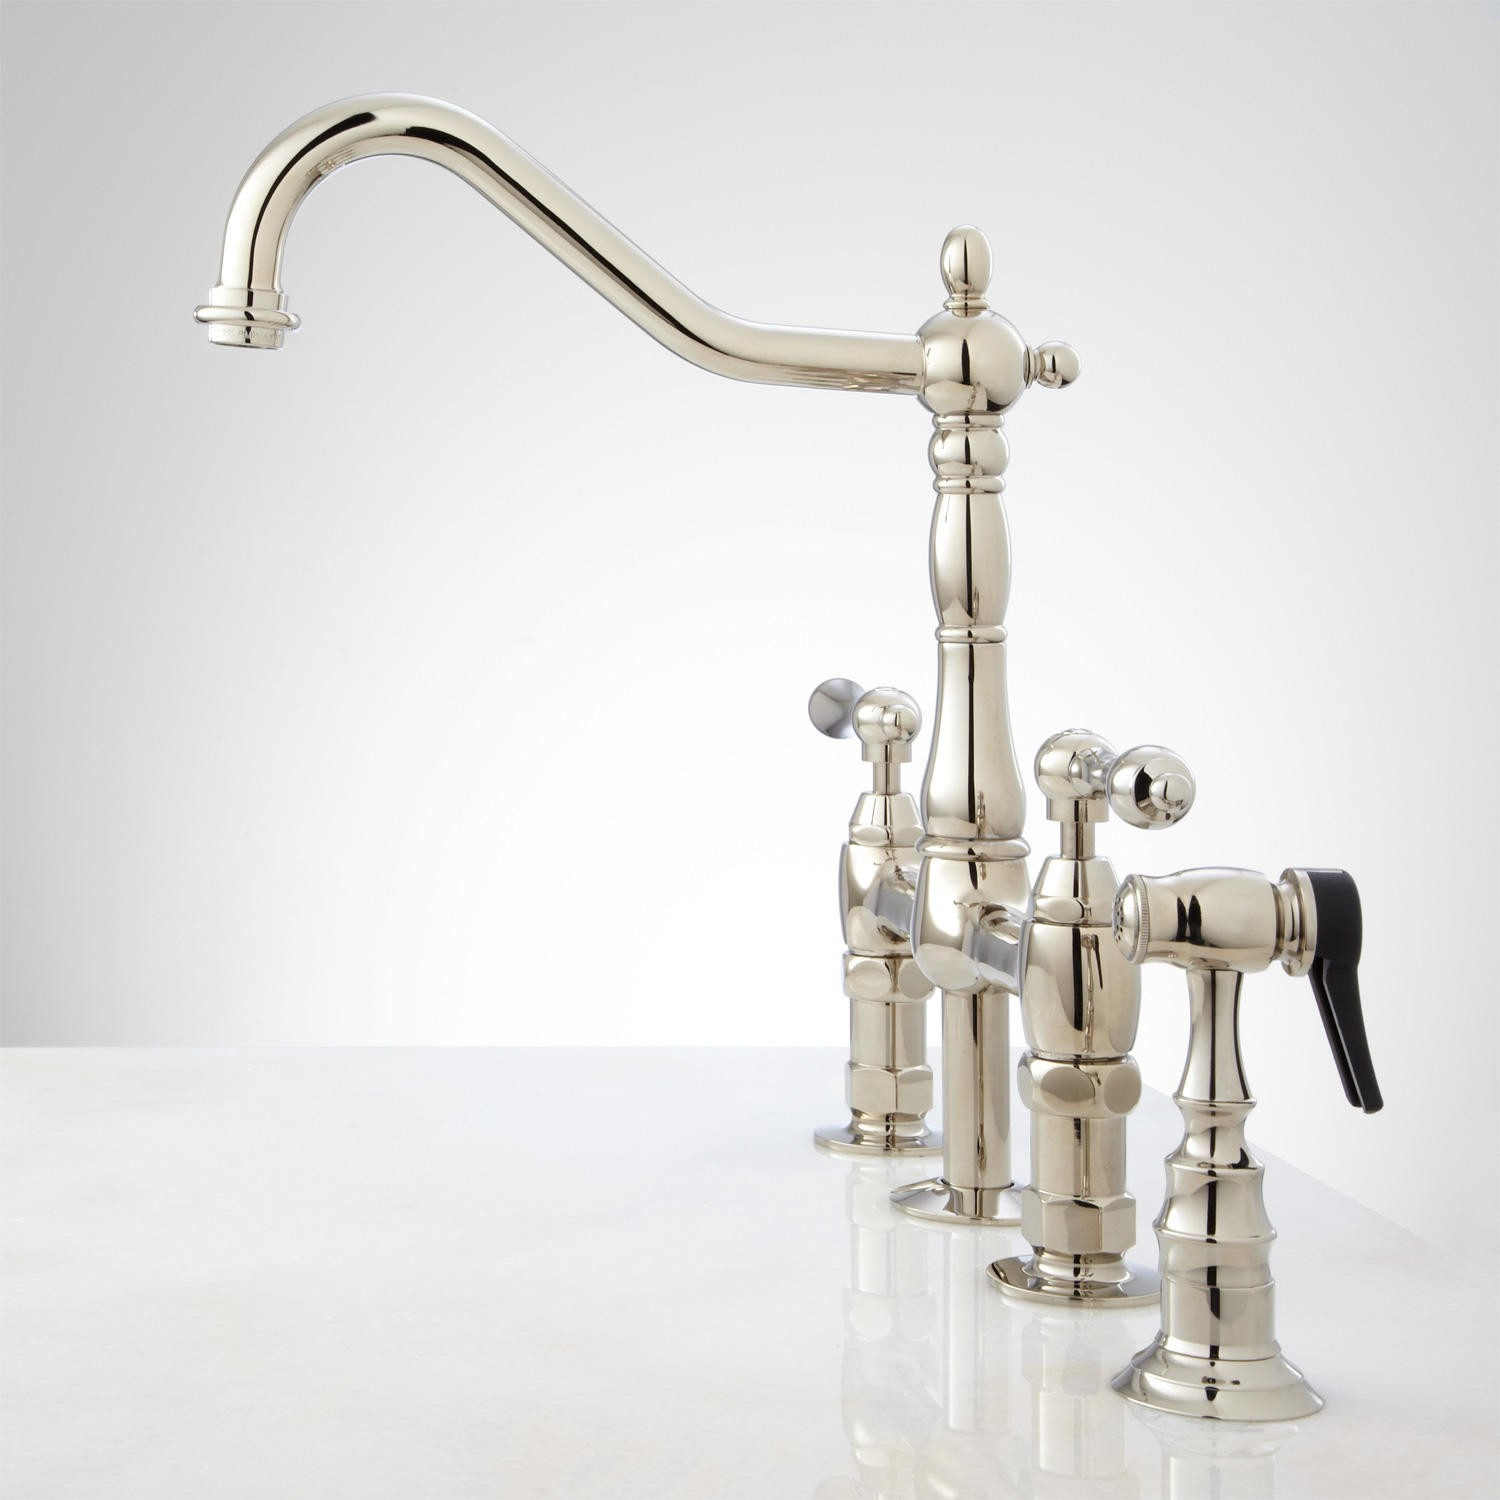 Wolverine Brass Bathroom Faucets • Faucet Ideas Site